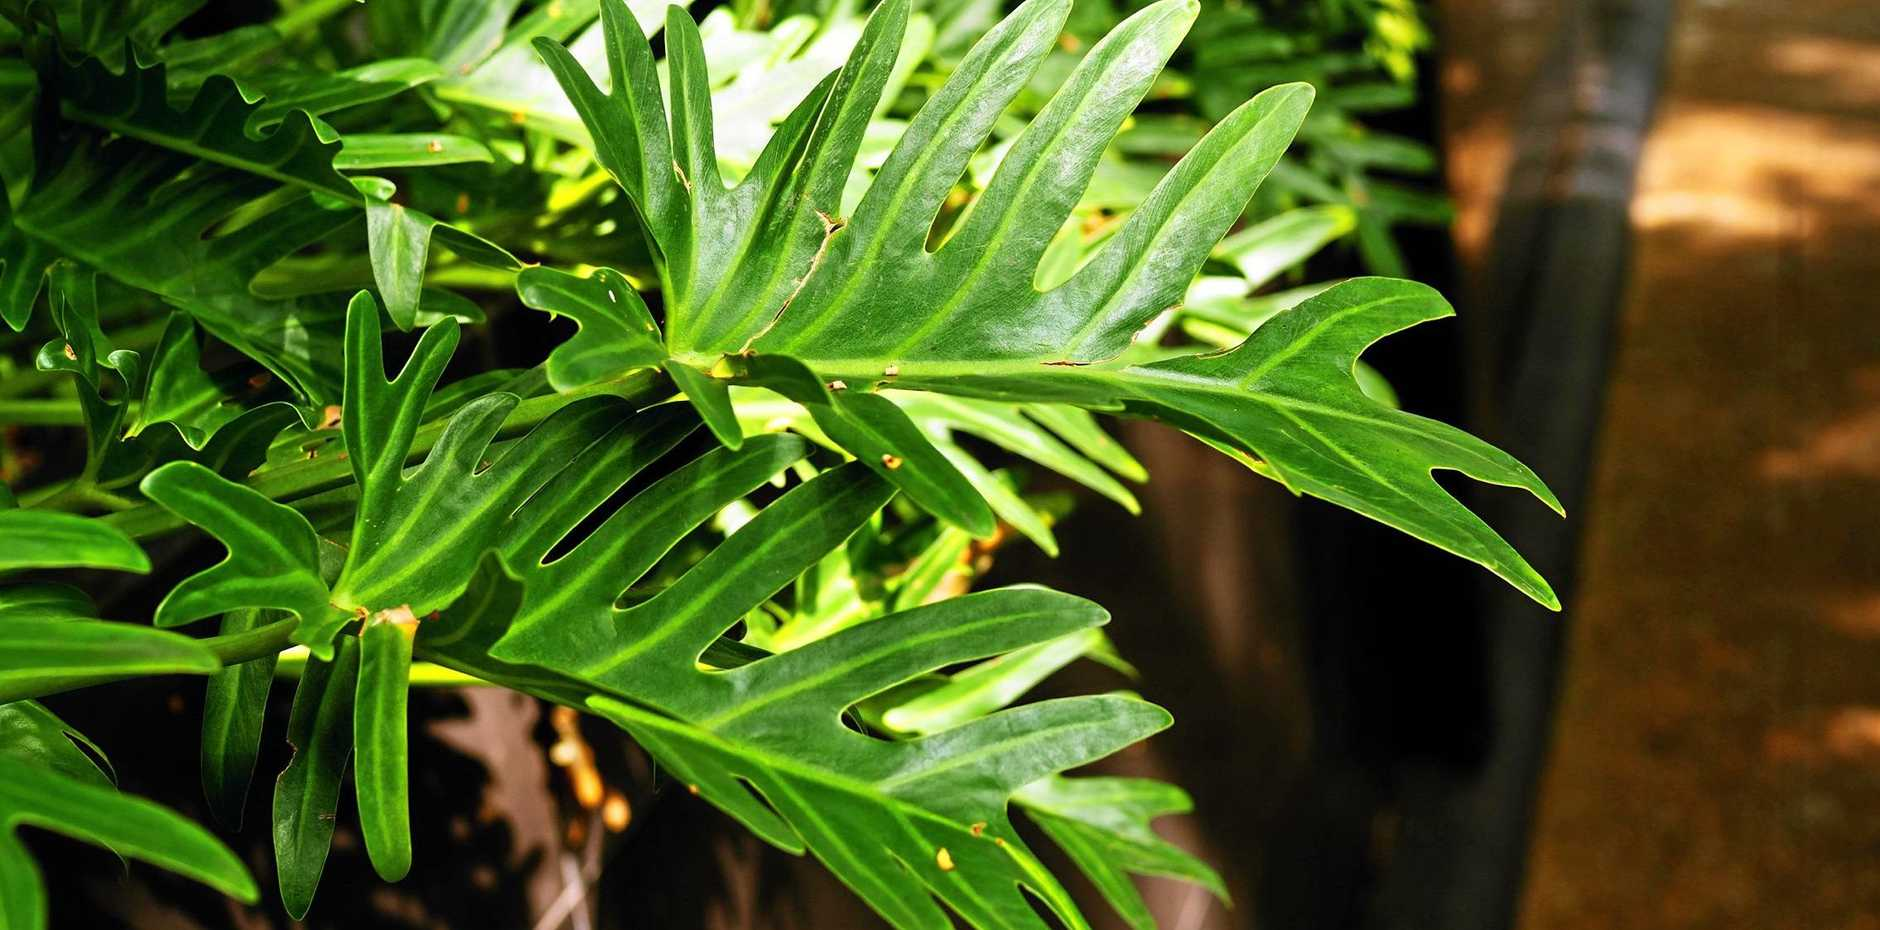 Philodendron xanadu forms a beautiful mound of deeply lobed, dark green leaves.